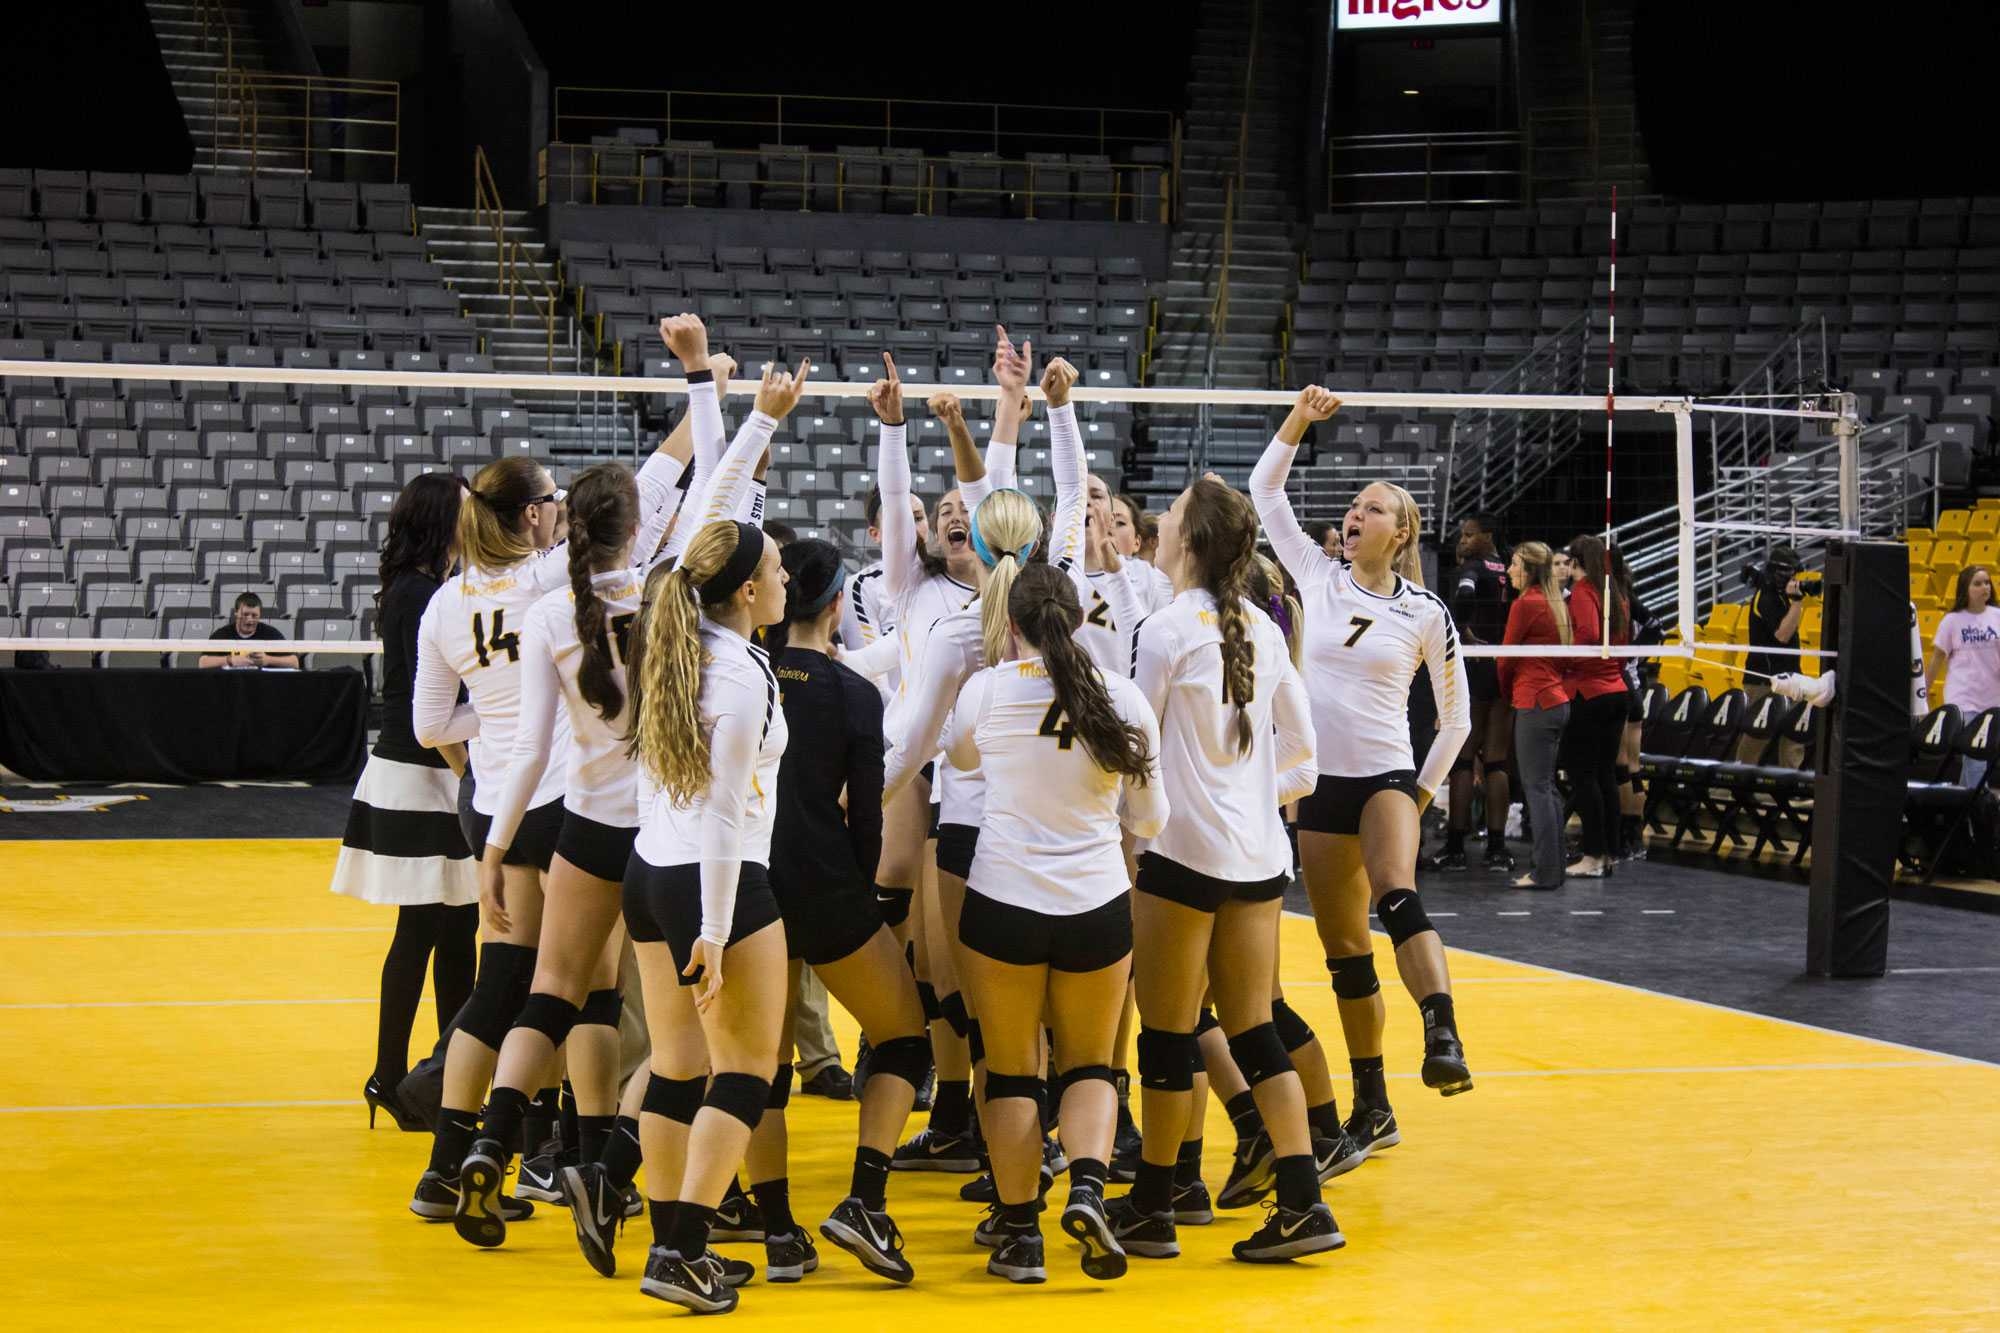 In photos: Appalachian State volleyball team win over Gardner-Webb